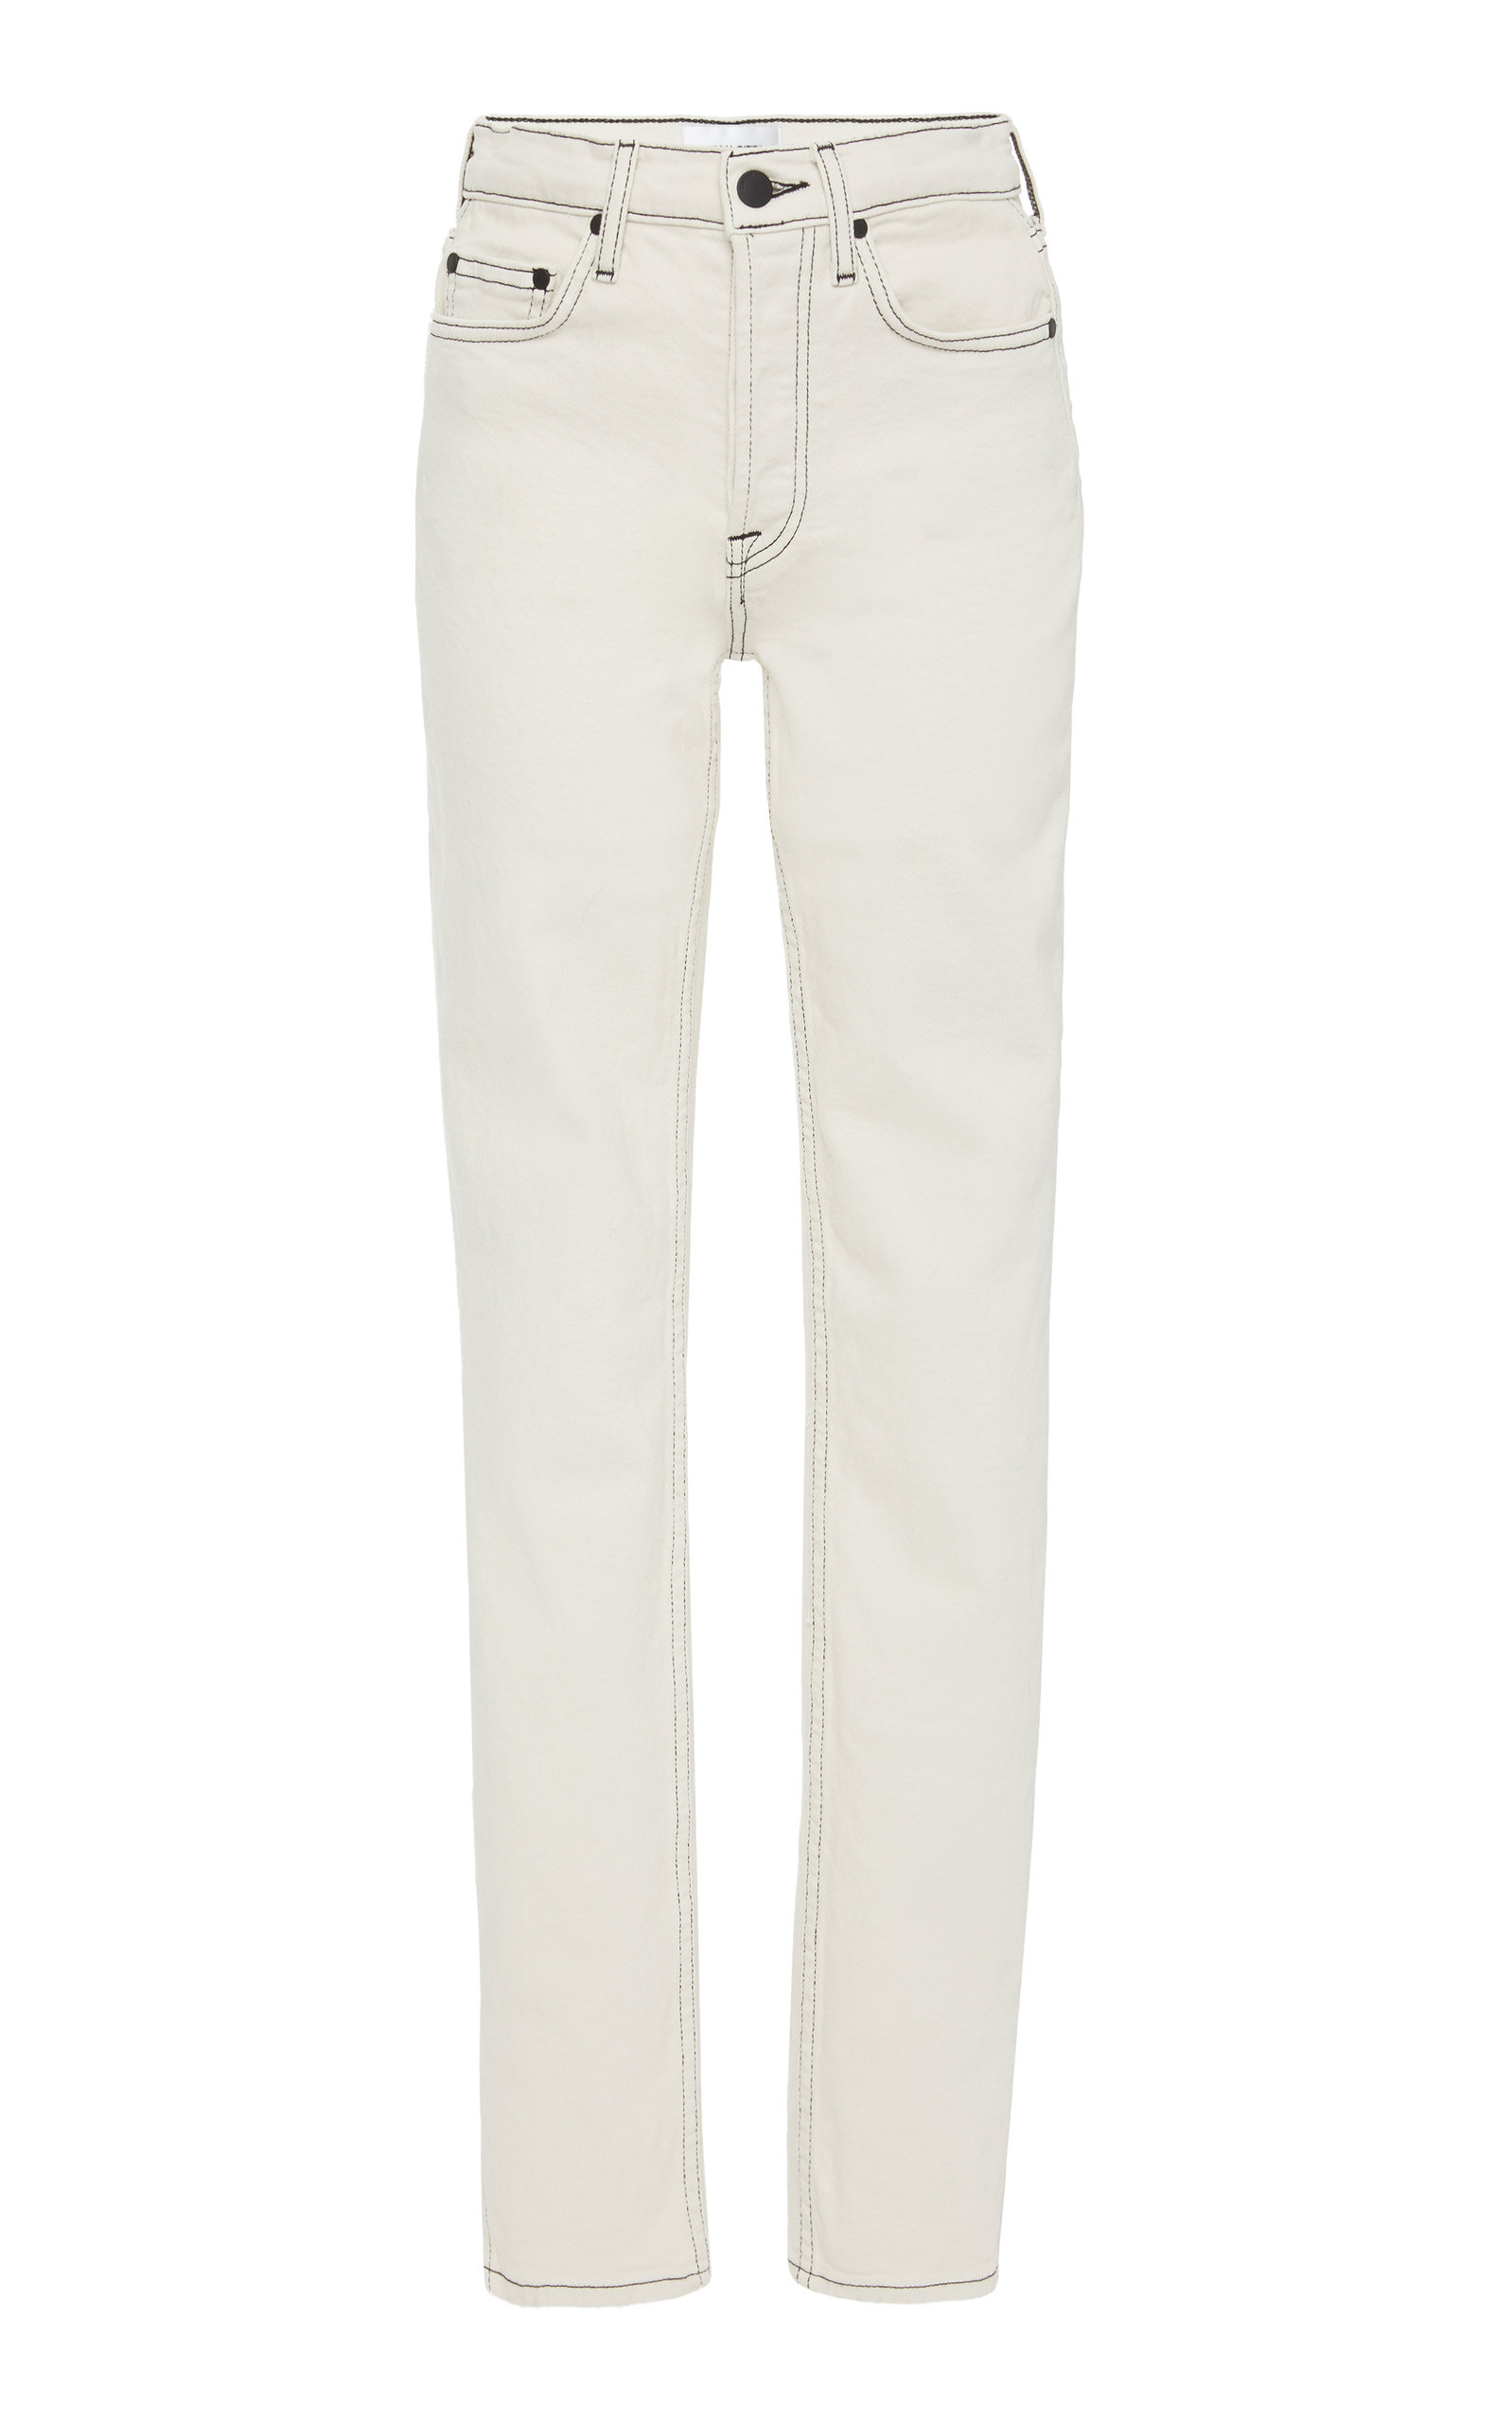 Cotton Citizen HIGH-WAISTED SKINNY JEANS